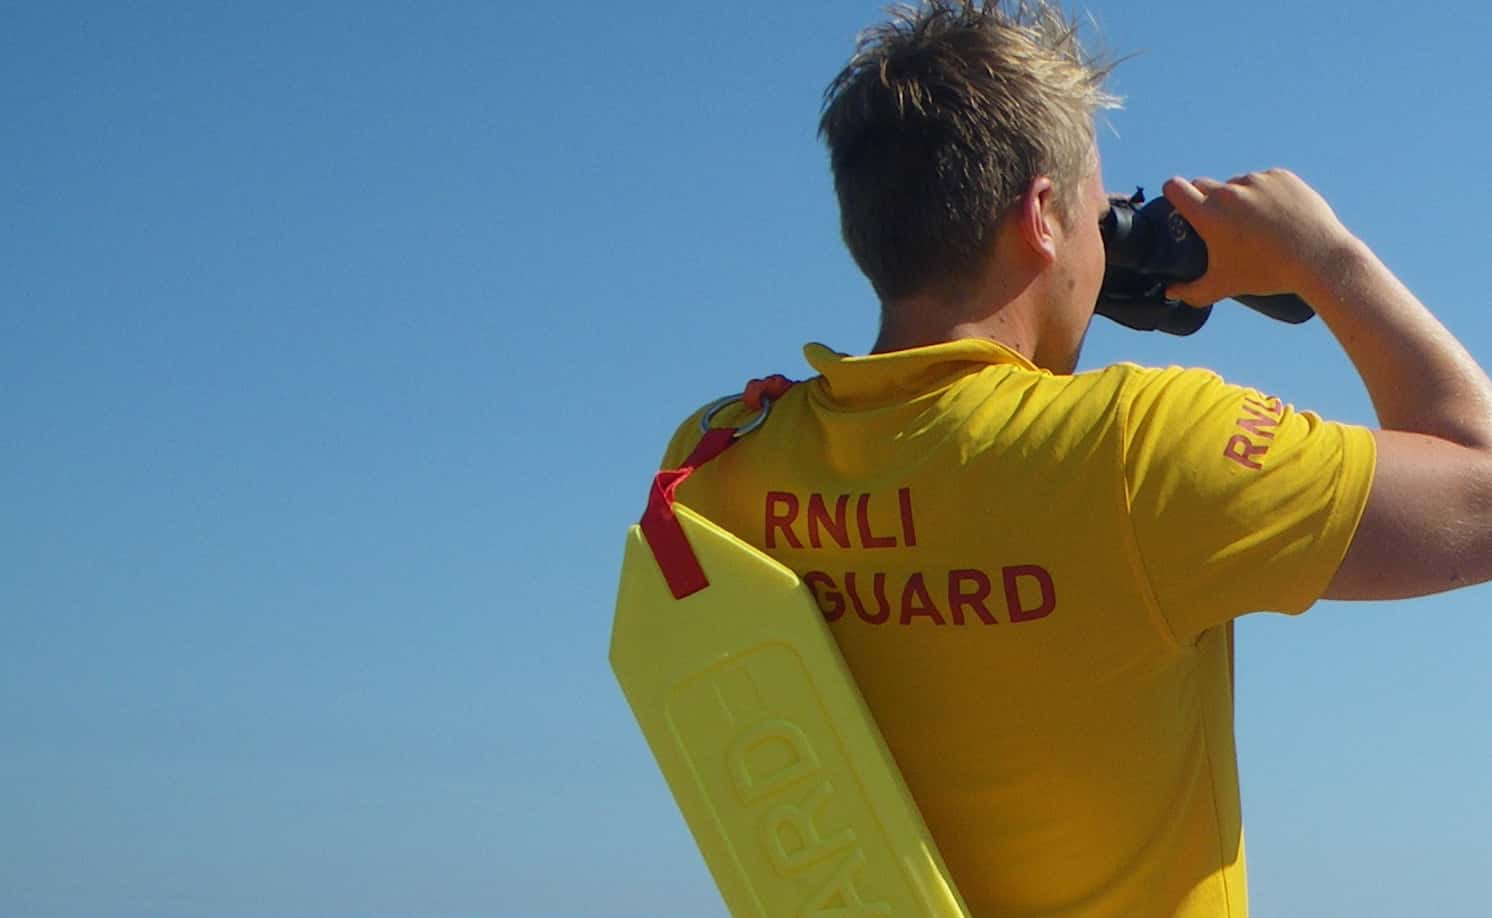 The photograph shows an RNLI lifeguard on patrol/ RNLI.